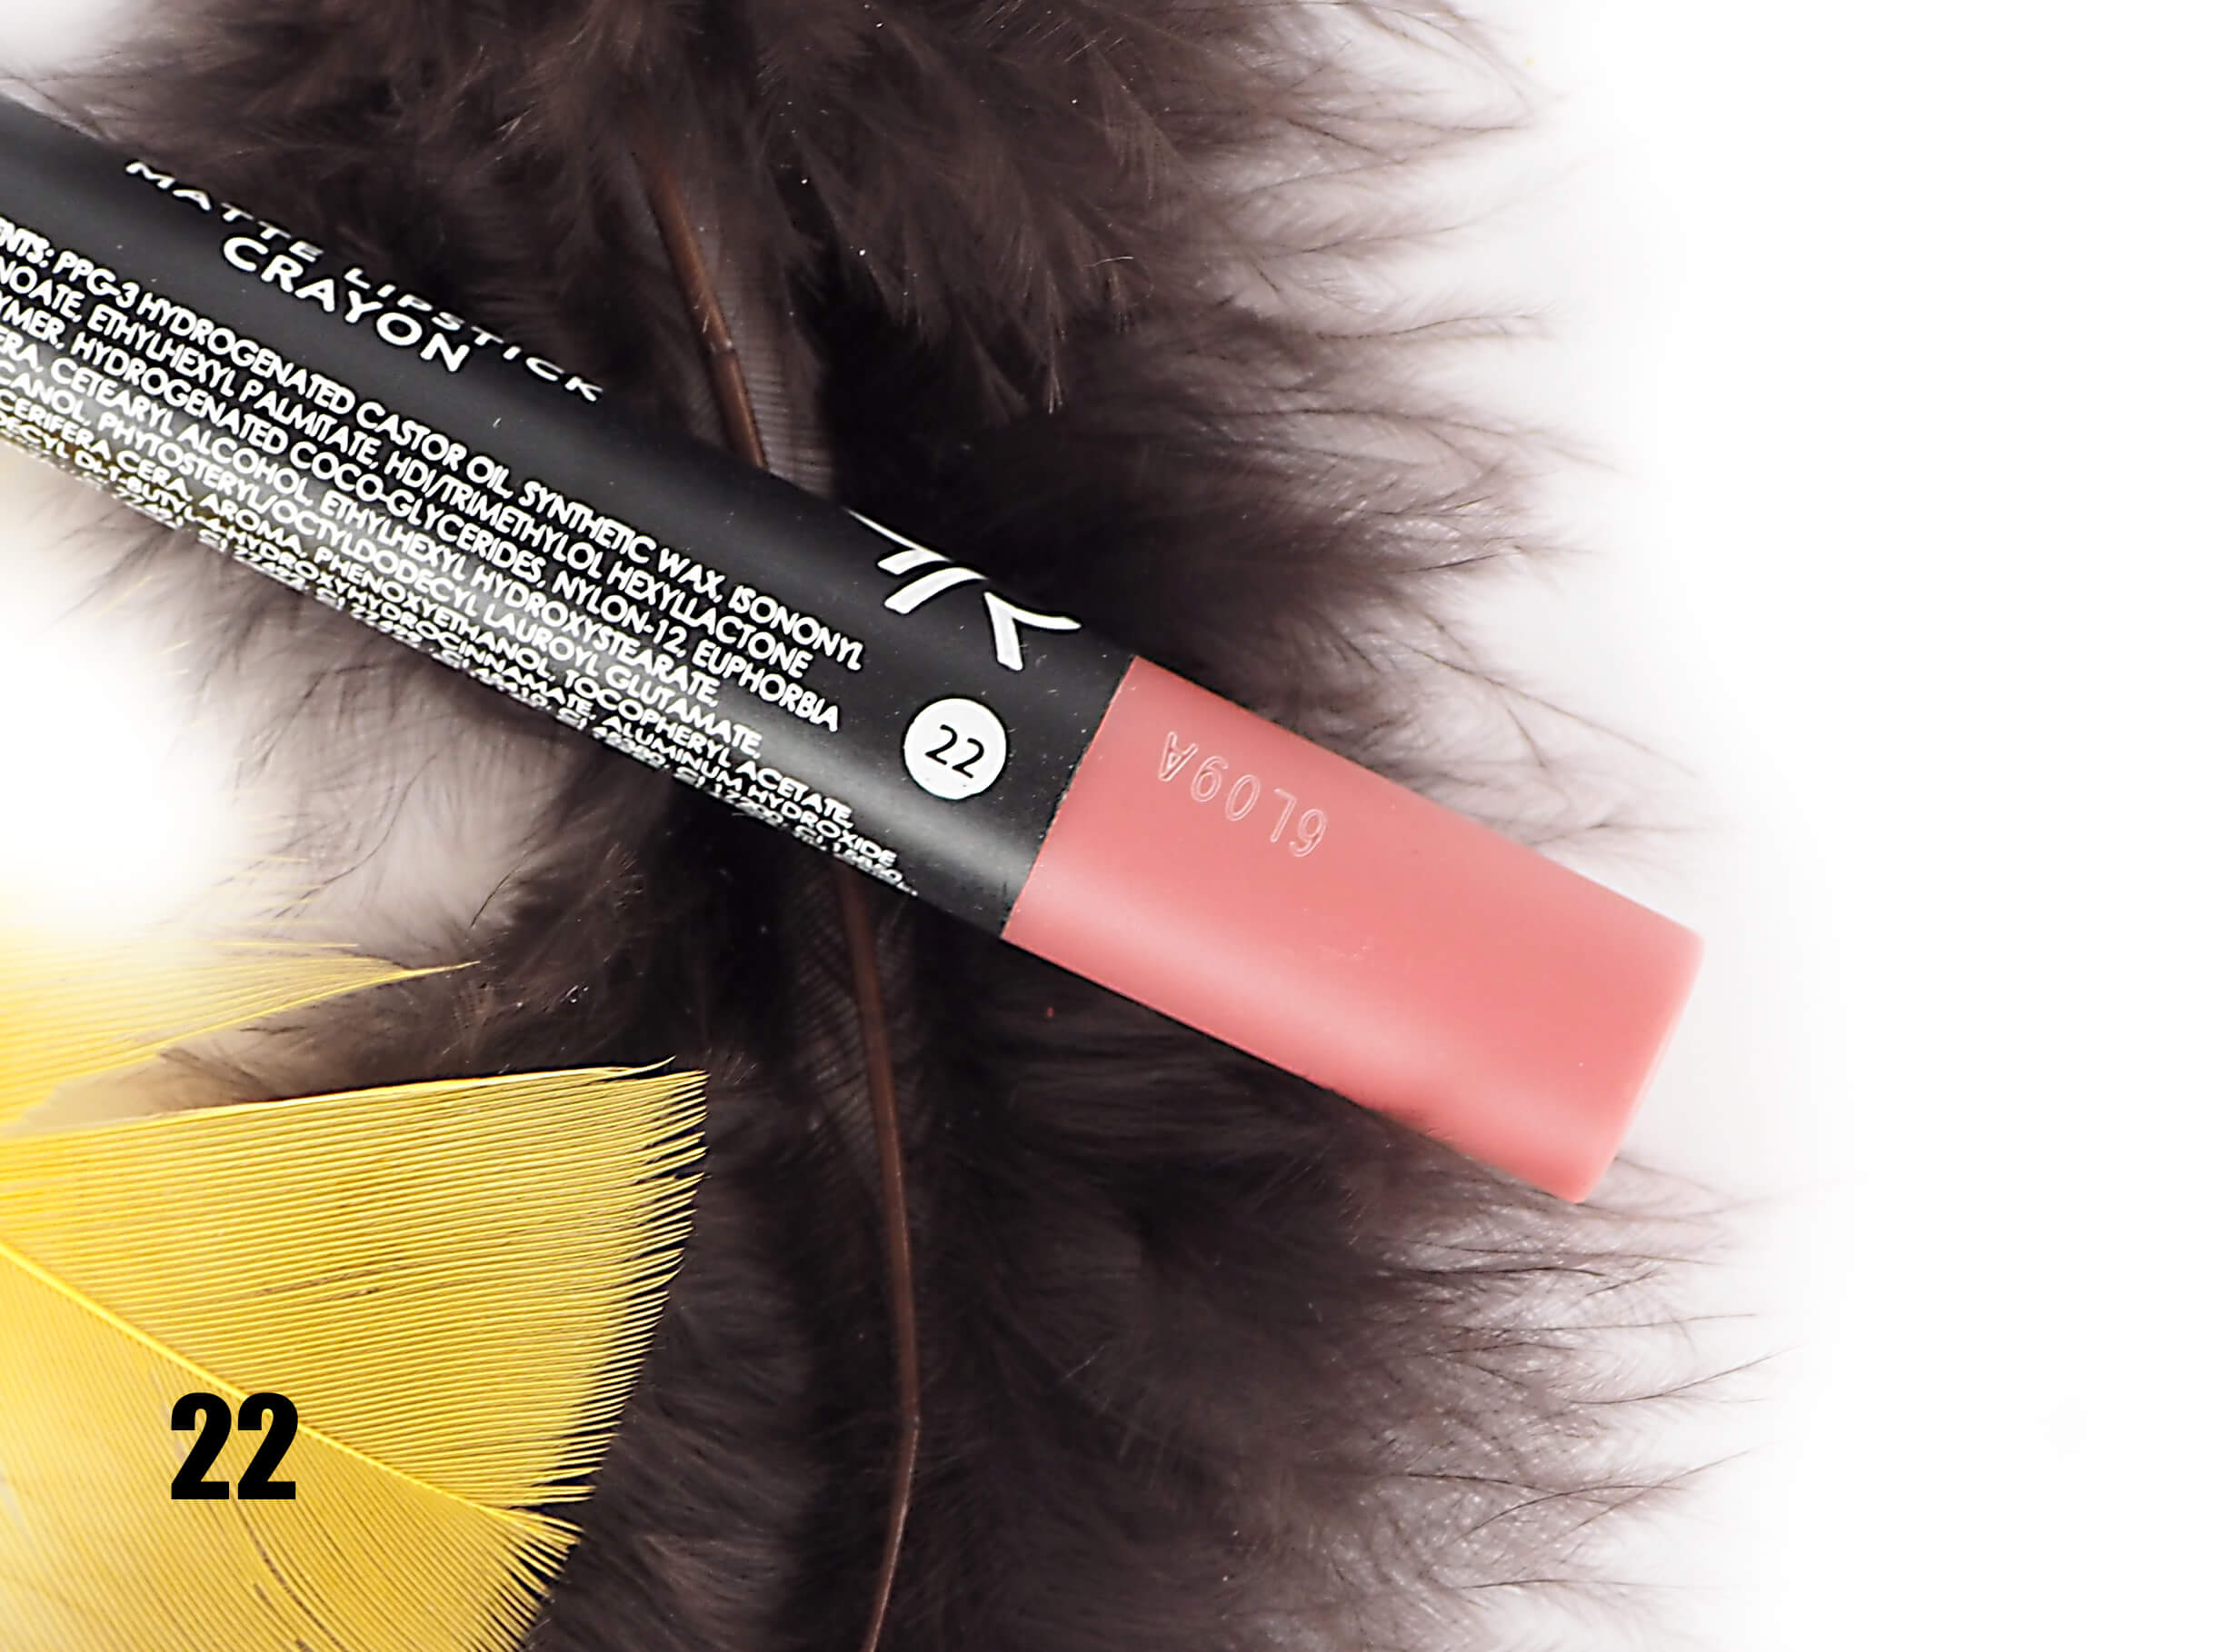 GOLDEN ROSE 22 MATTE LIPSTICK CRAYON